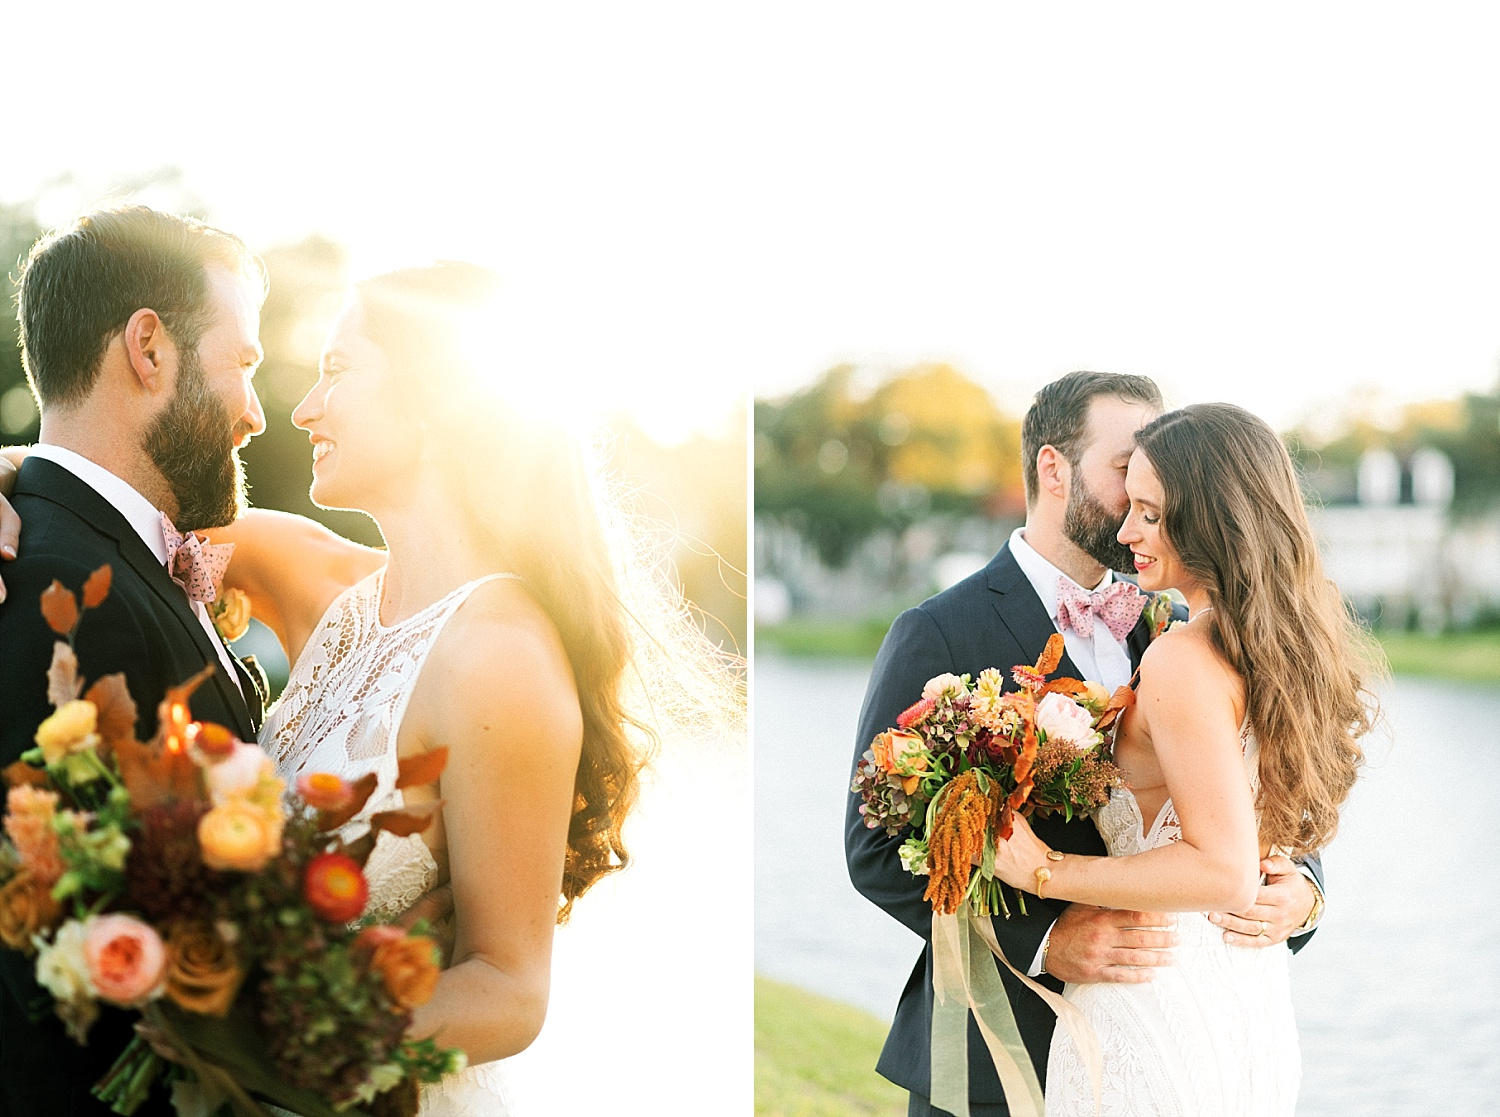 Pitot House Wedding New Orleans